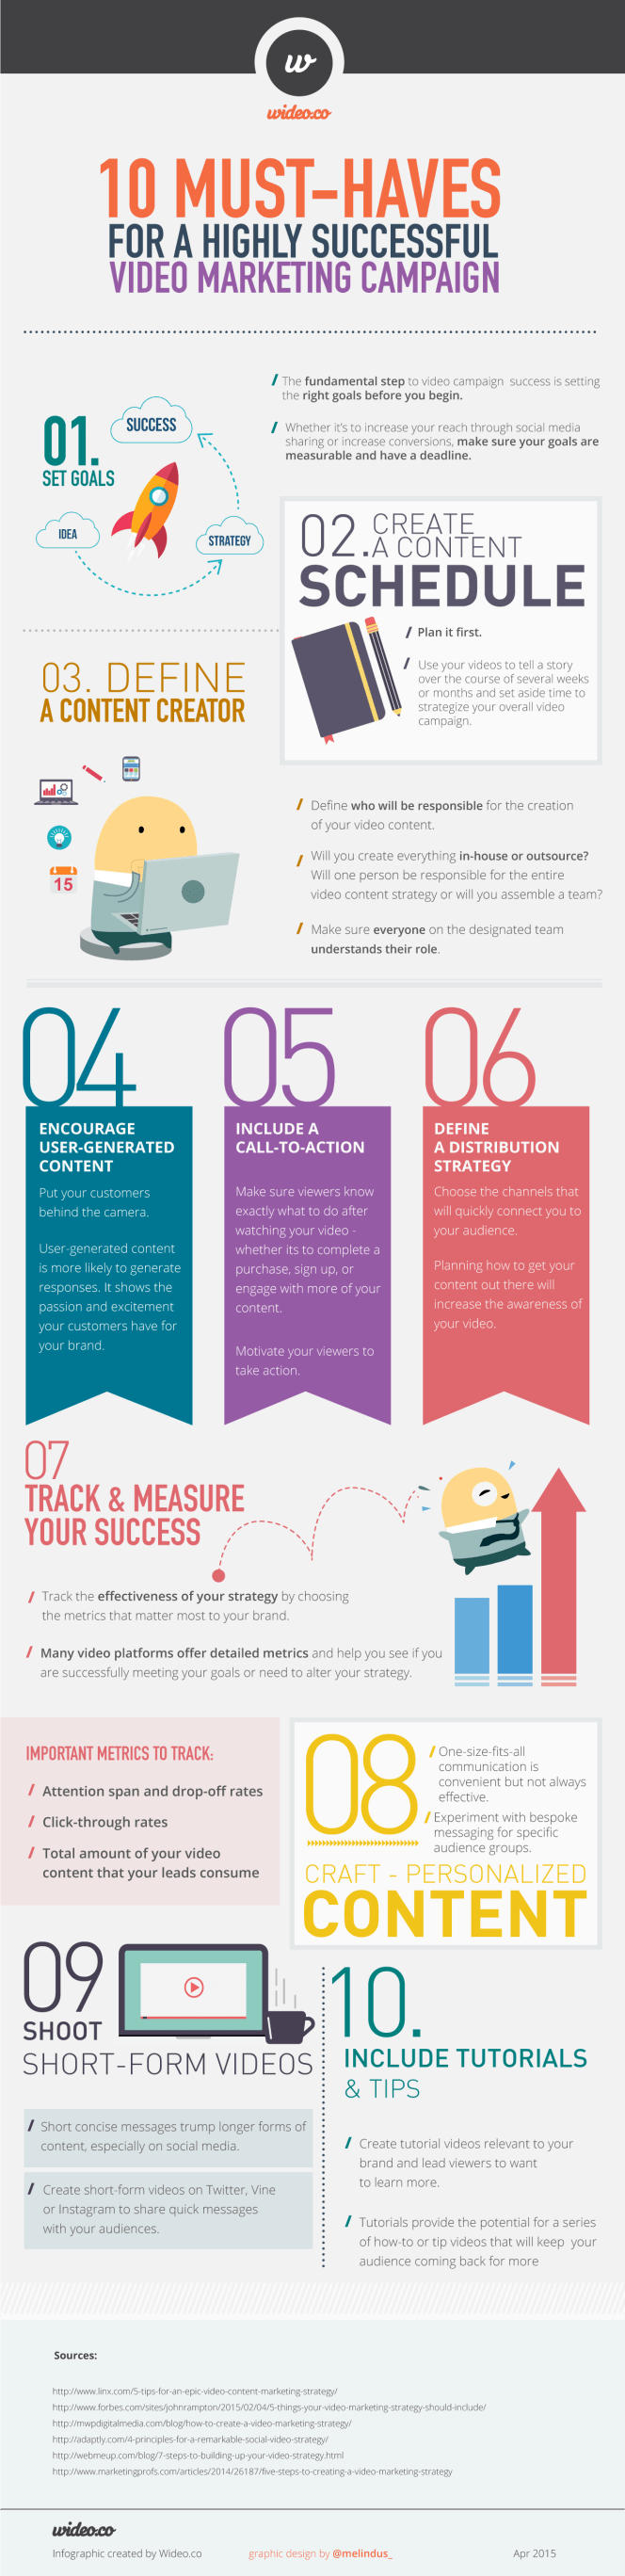 10 Must-Haves for a Highly Successful Video Marketing Campaign [Infographic]